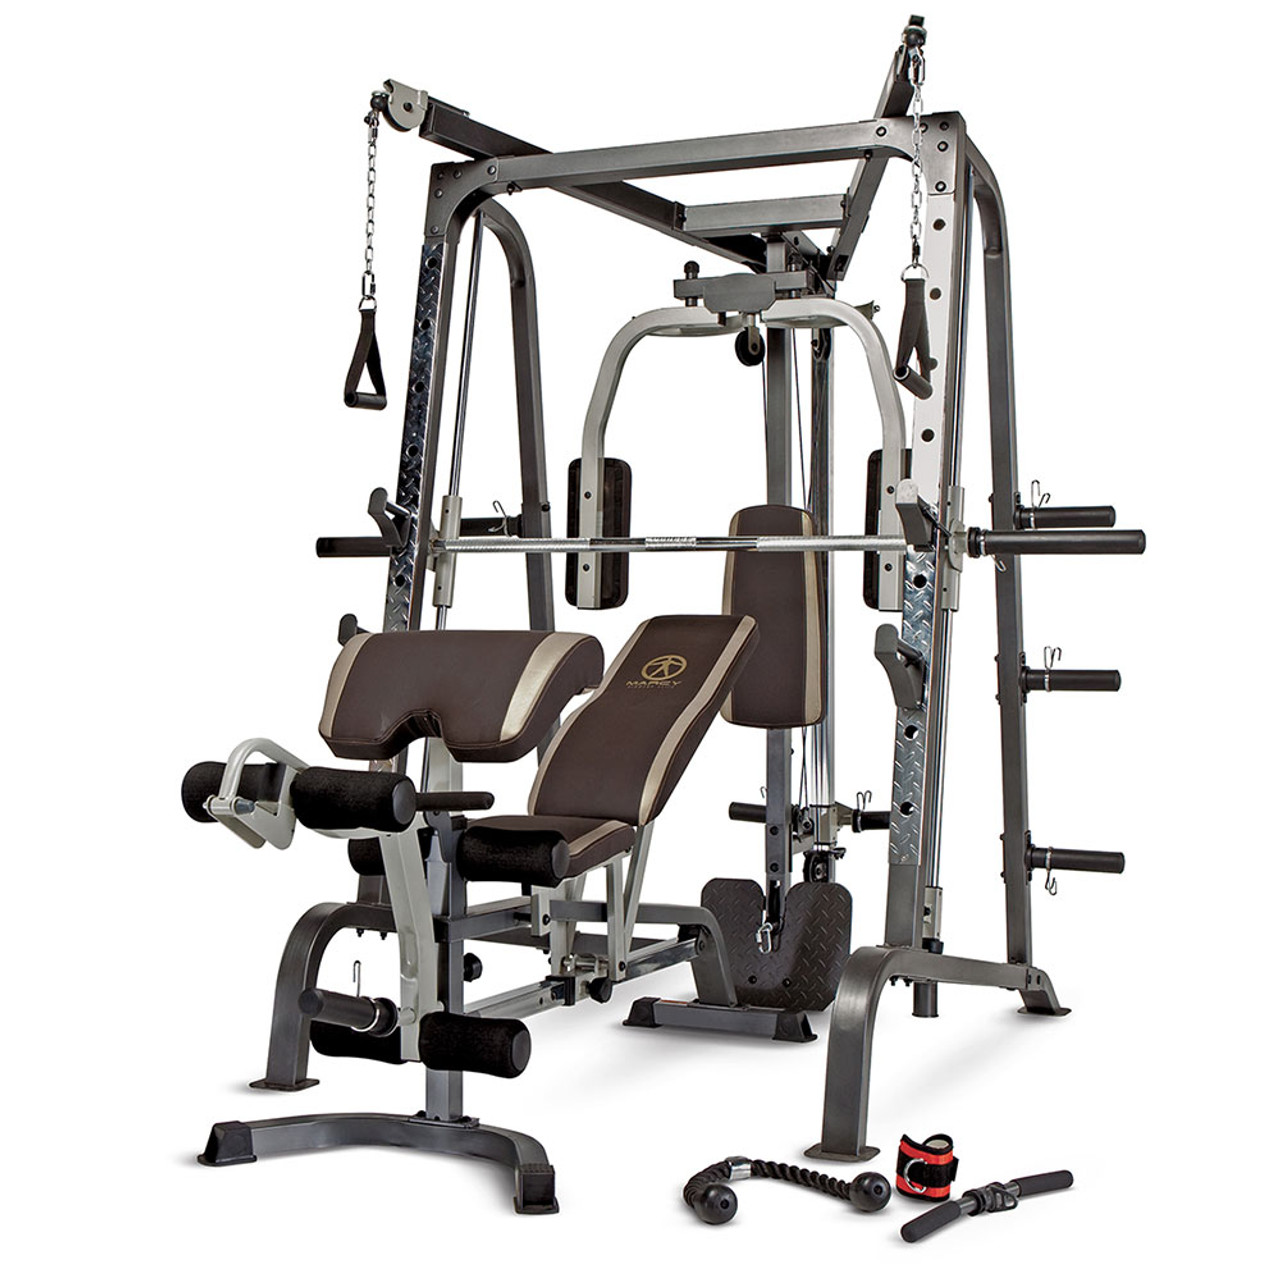 The best quality brand smith machine home gym md g